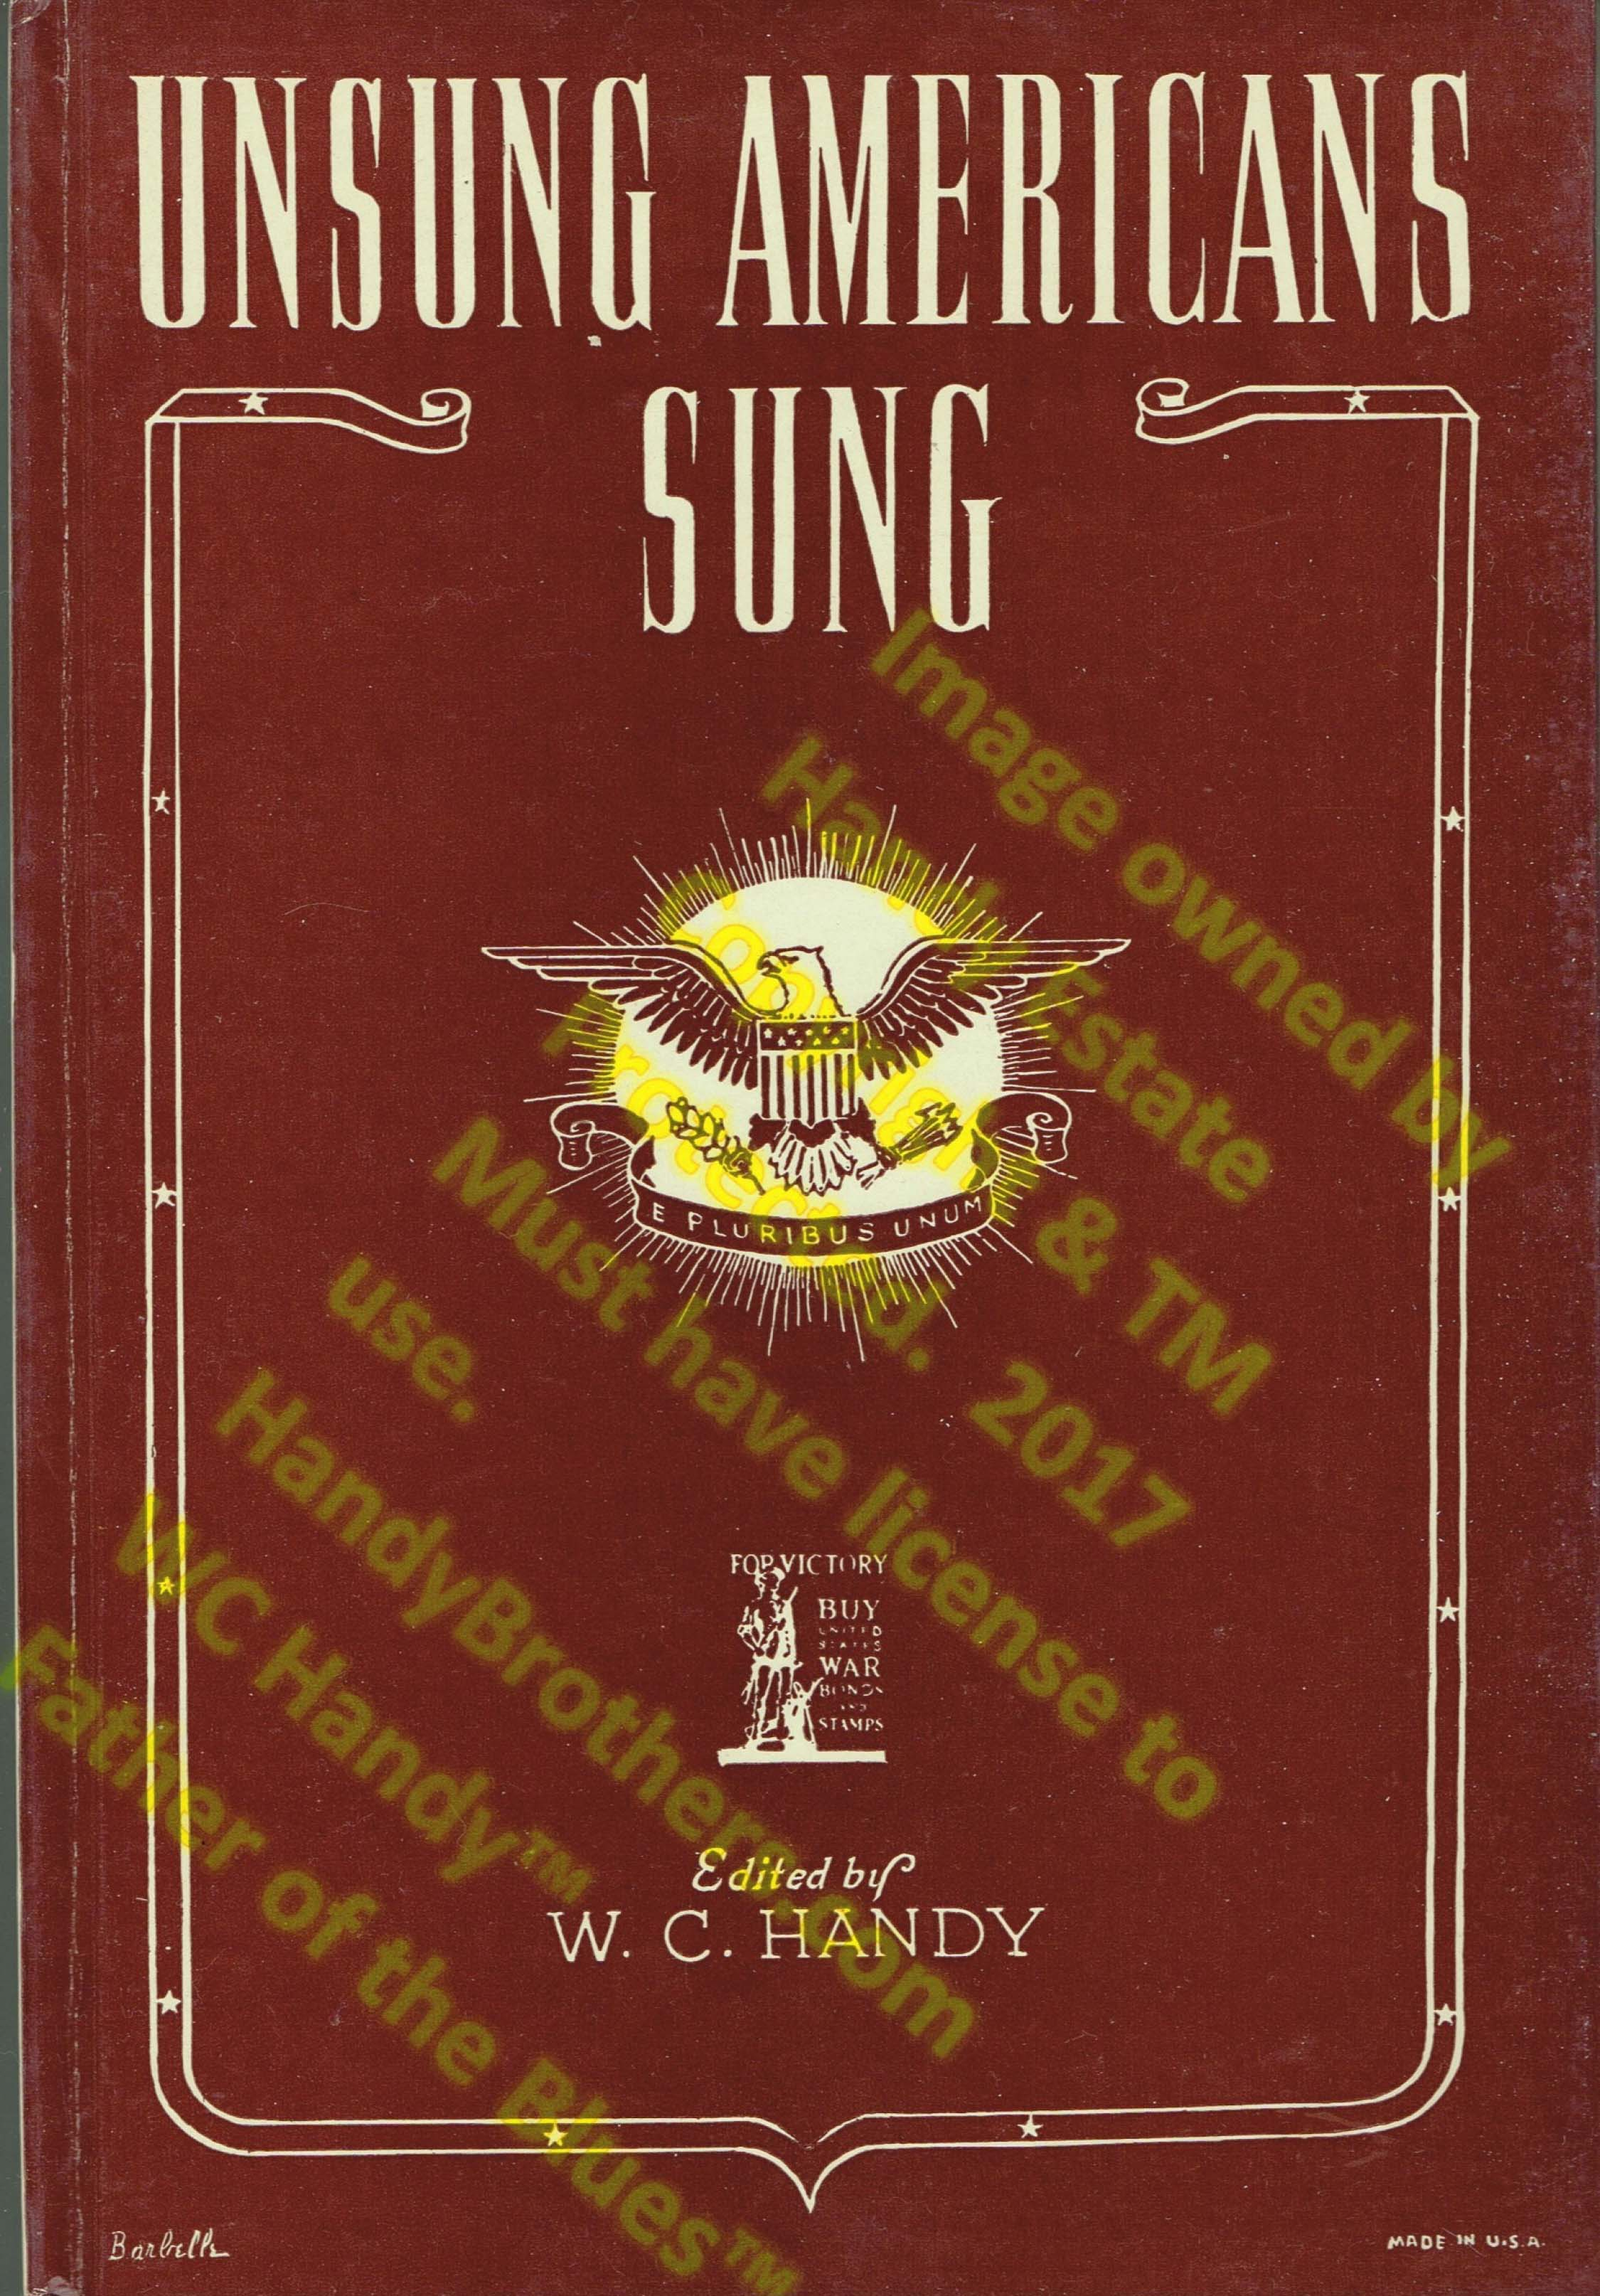 WC Handy Book Unsung Americans Sung